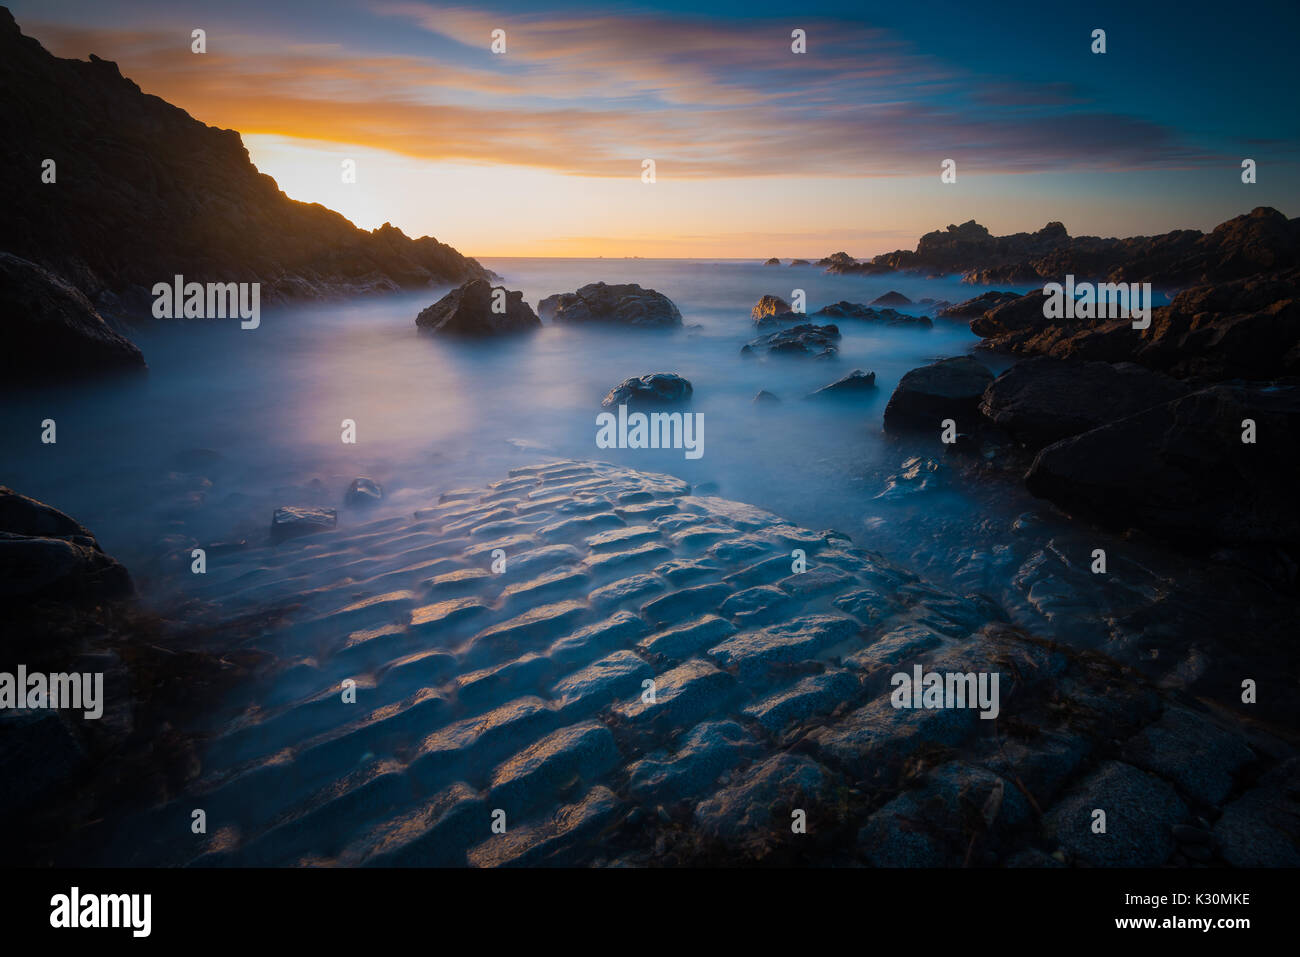 Sea views from Pleinmont, Bailiwick of Guernsey, Channel Islands, United Kingdom - Stock Image